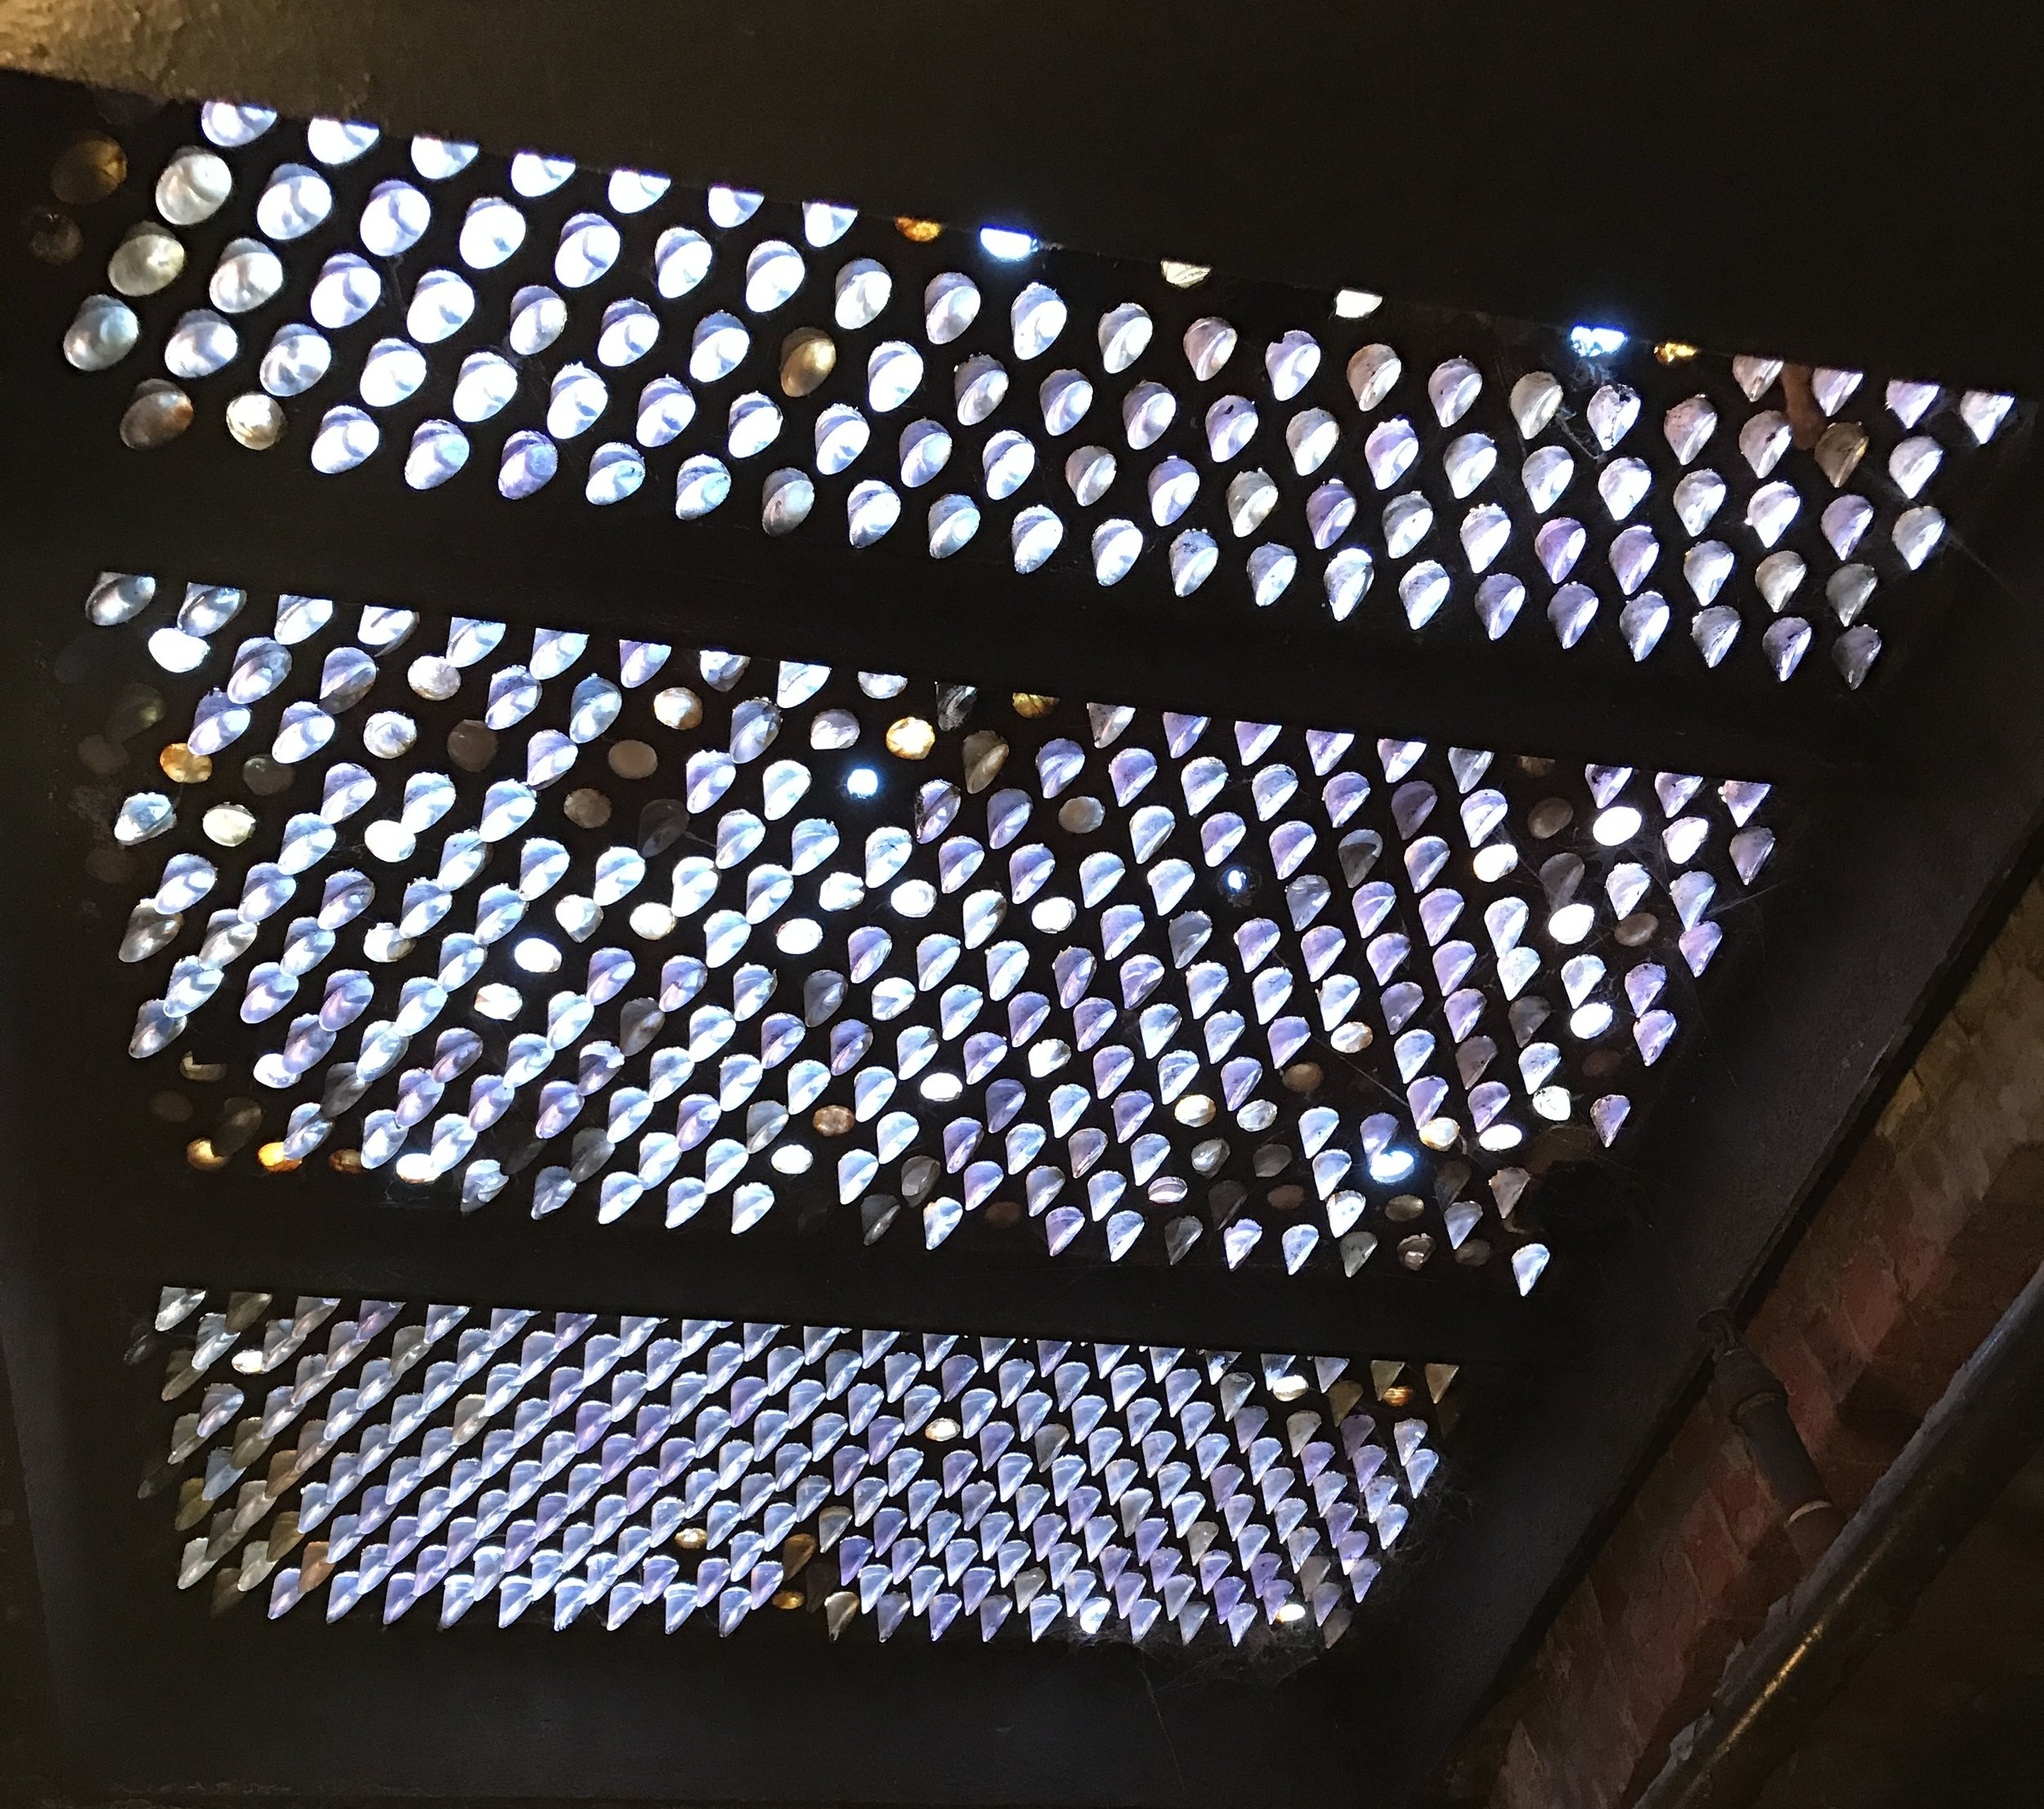 Pioneer Square skylight with original glass prisms.